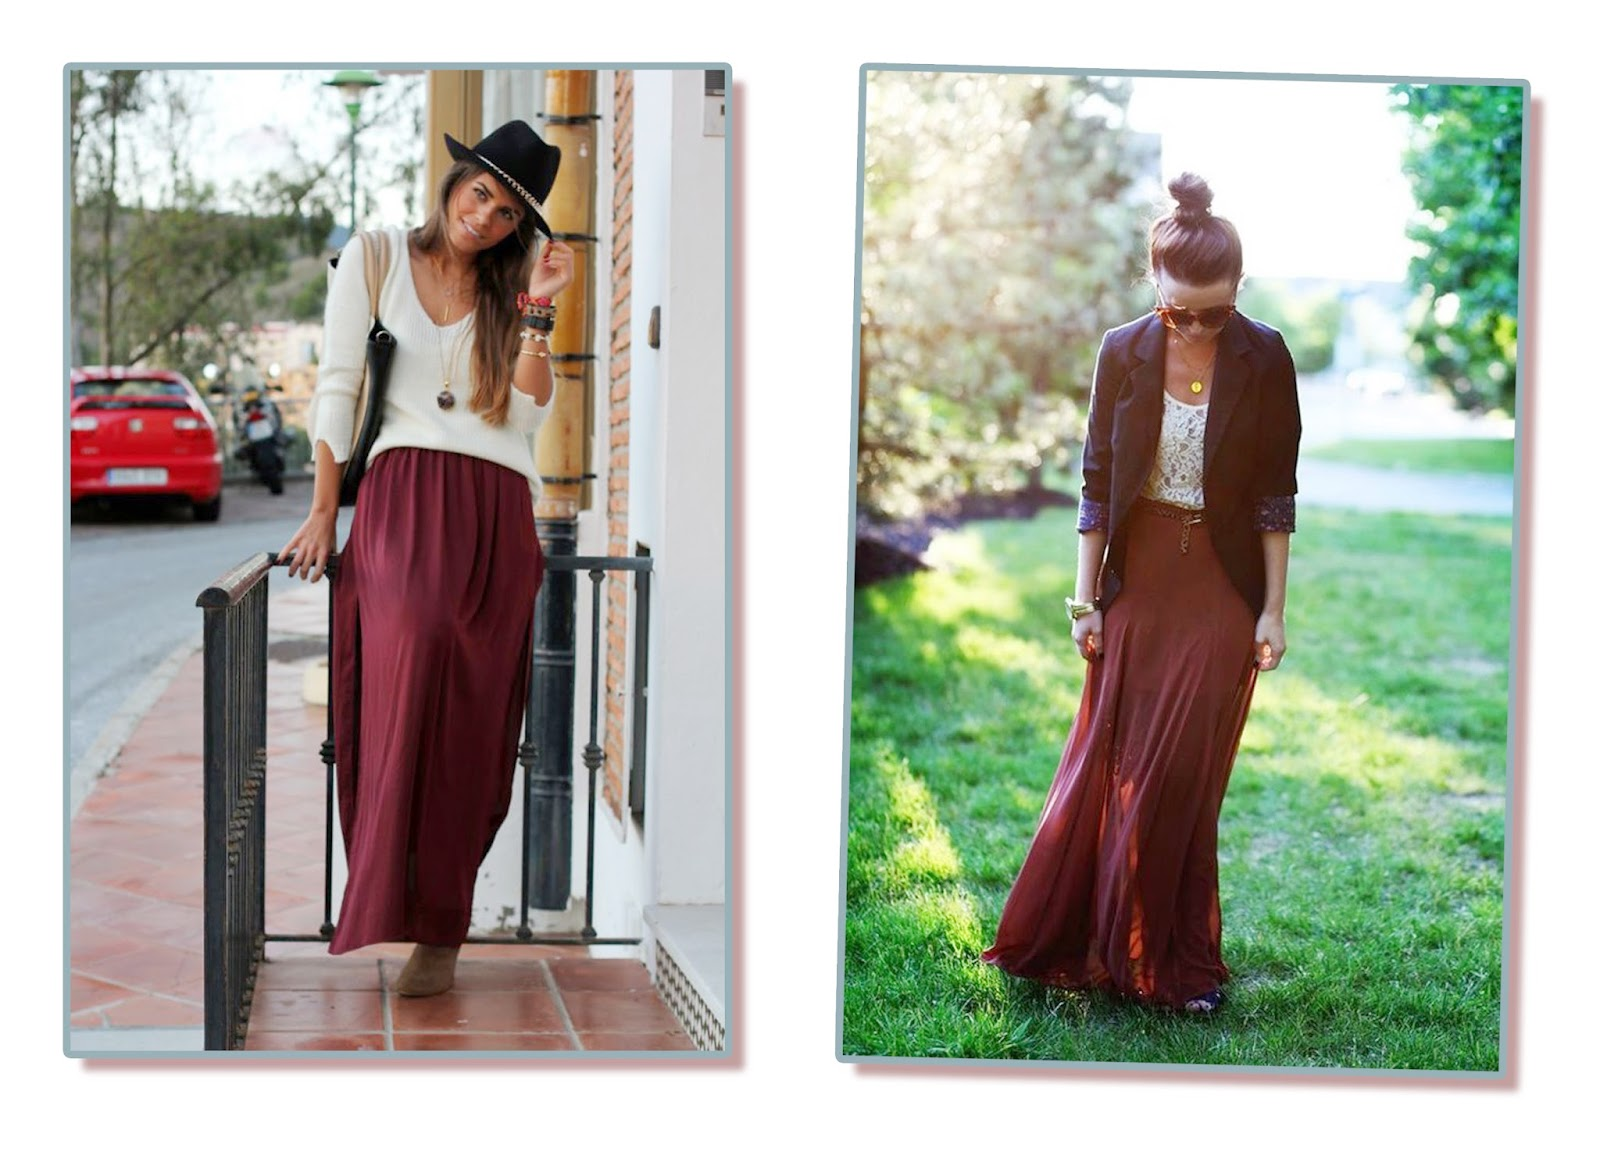 photo-como_combinar_falda_larga_granate-inspiracion-look-street_style